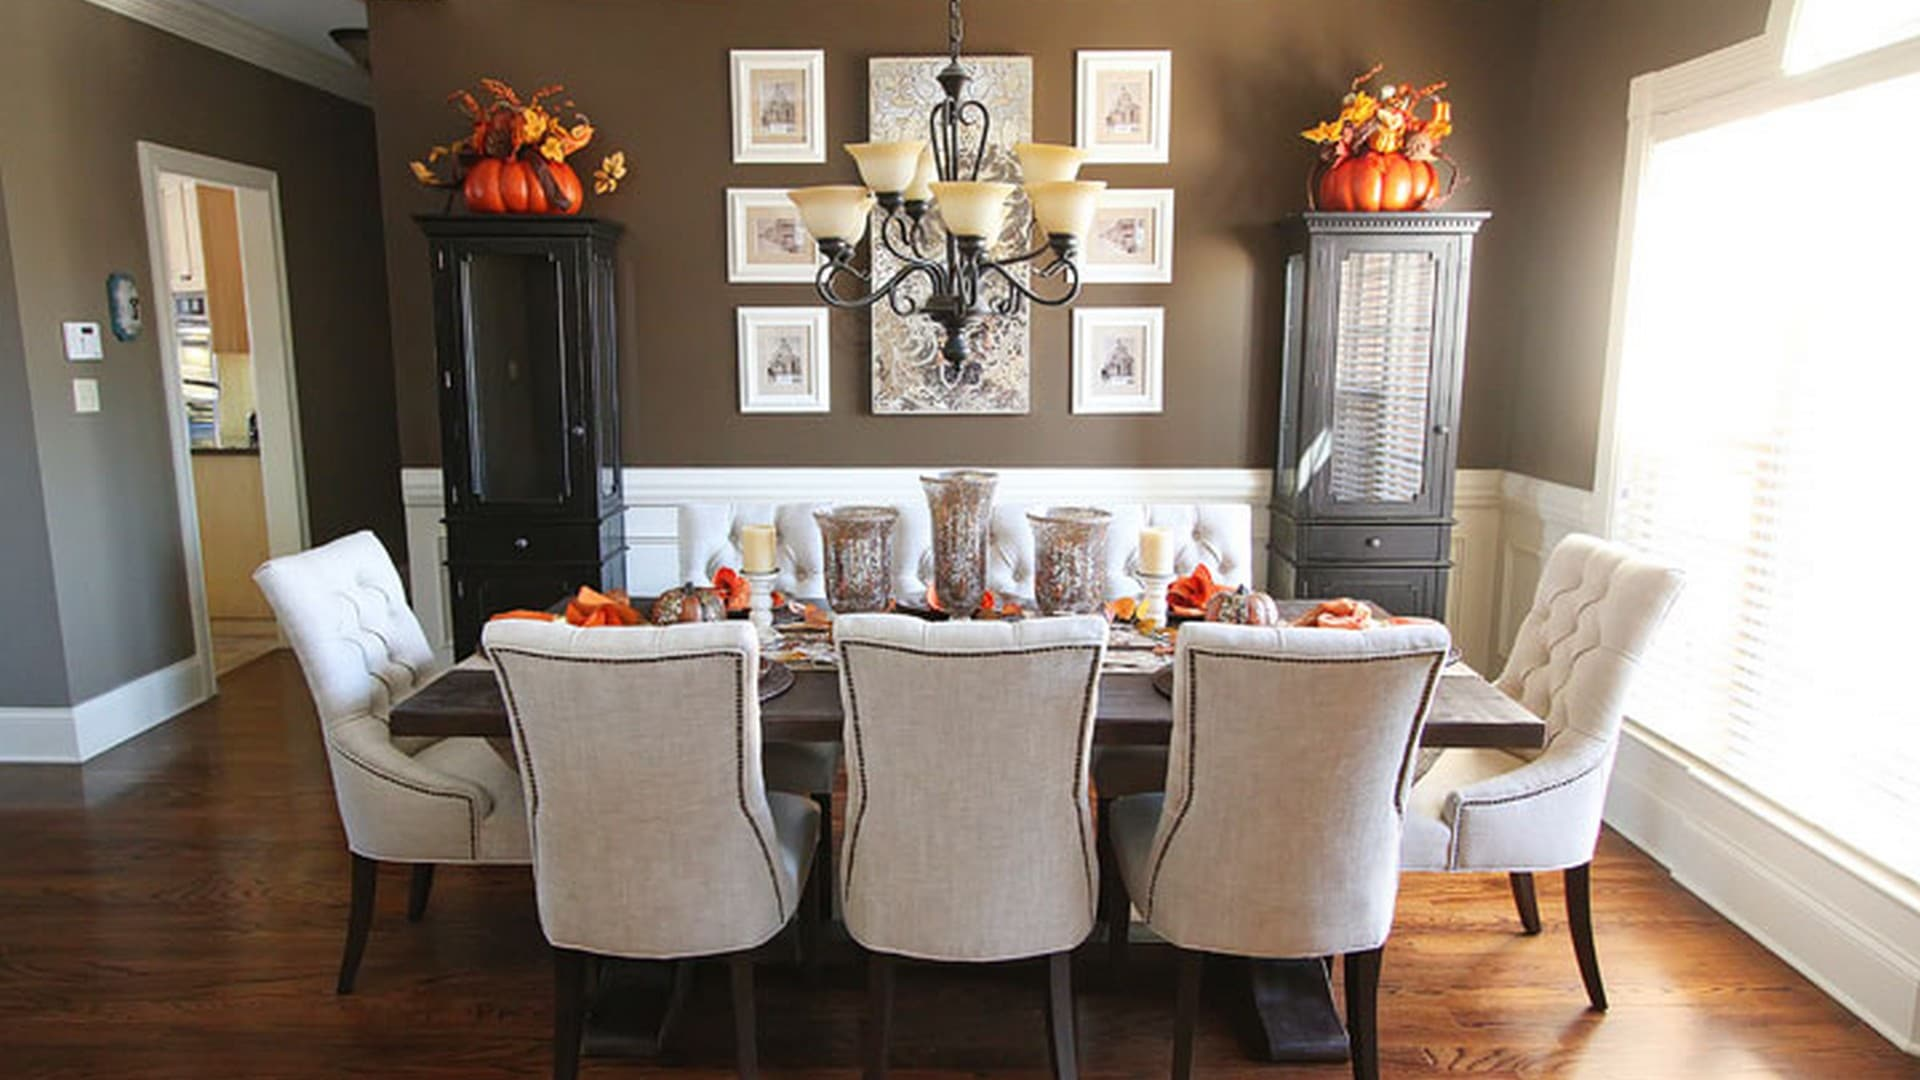 10 Creative Dining Room Decorating Ideas & Inspiration ...